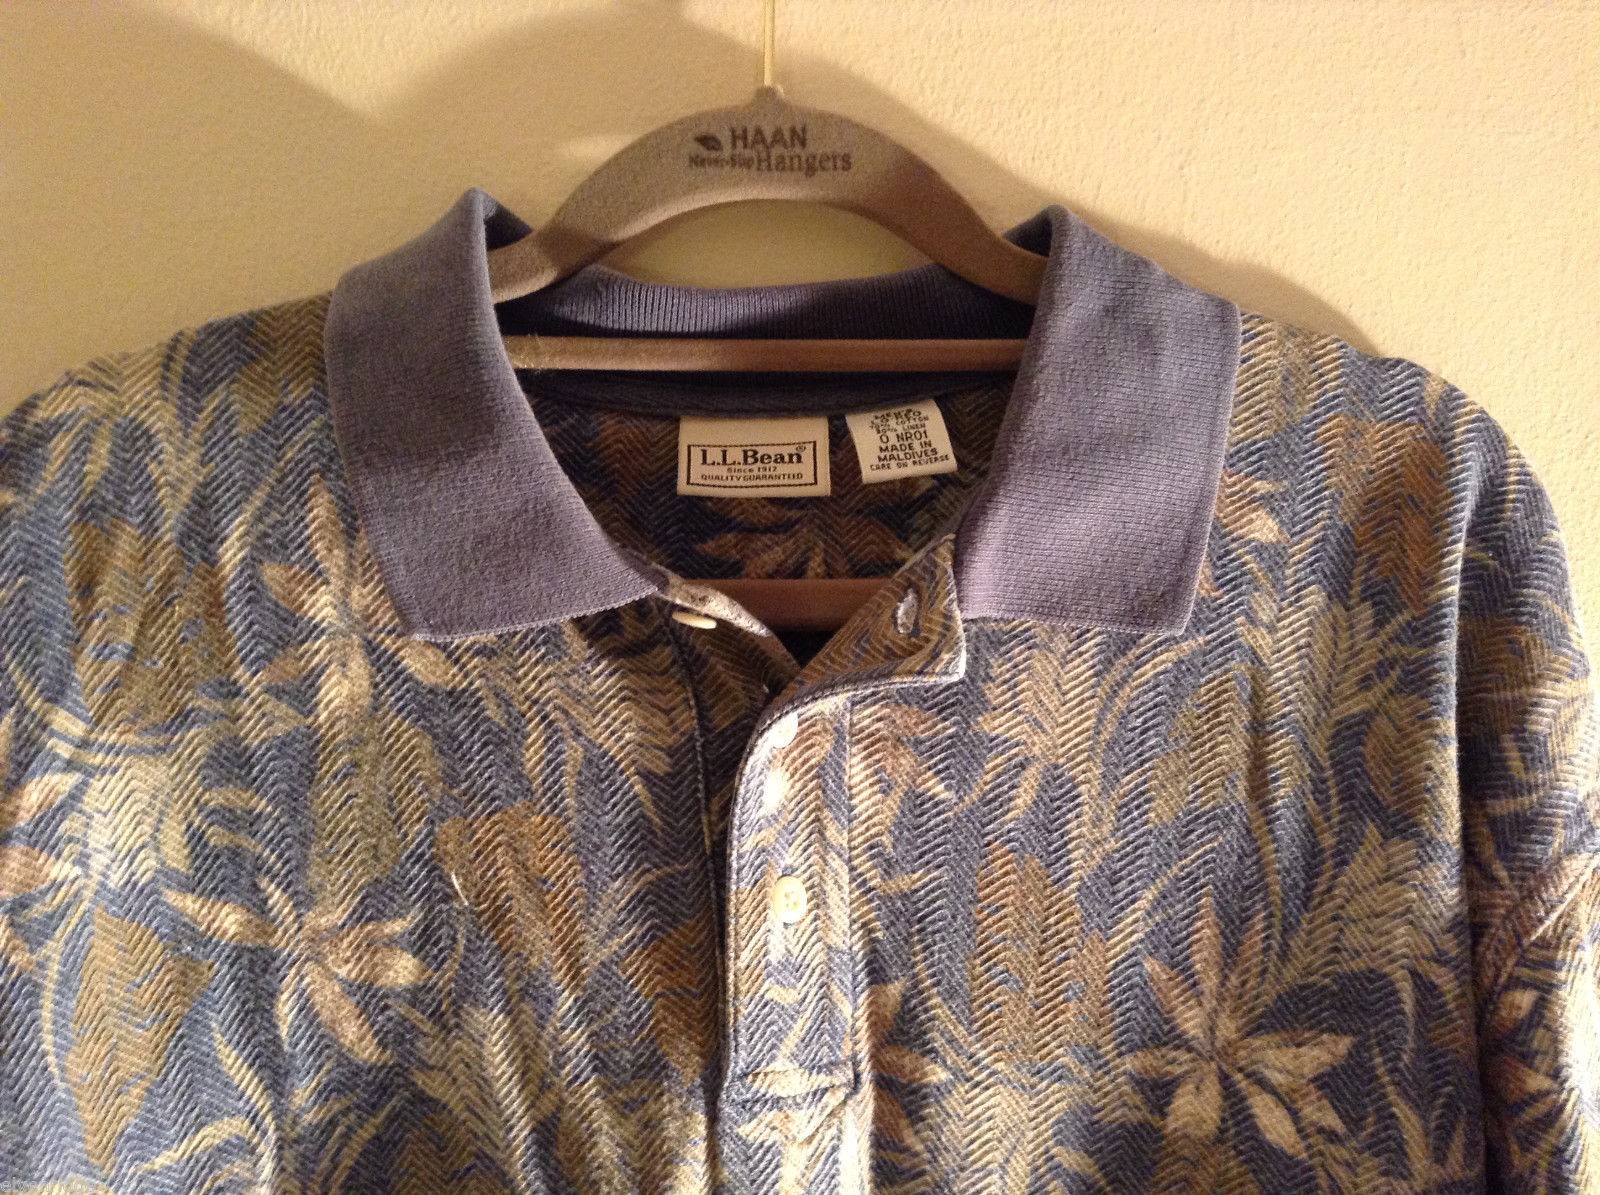 L.L. Bean Men's Large-Regular LG-Reg Polo Shirt Muted Color Tropical Palm Print